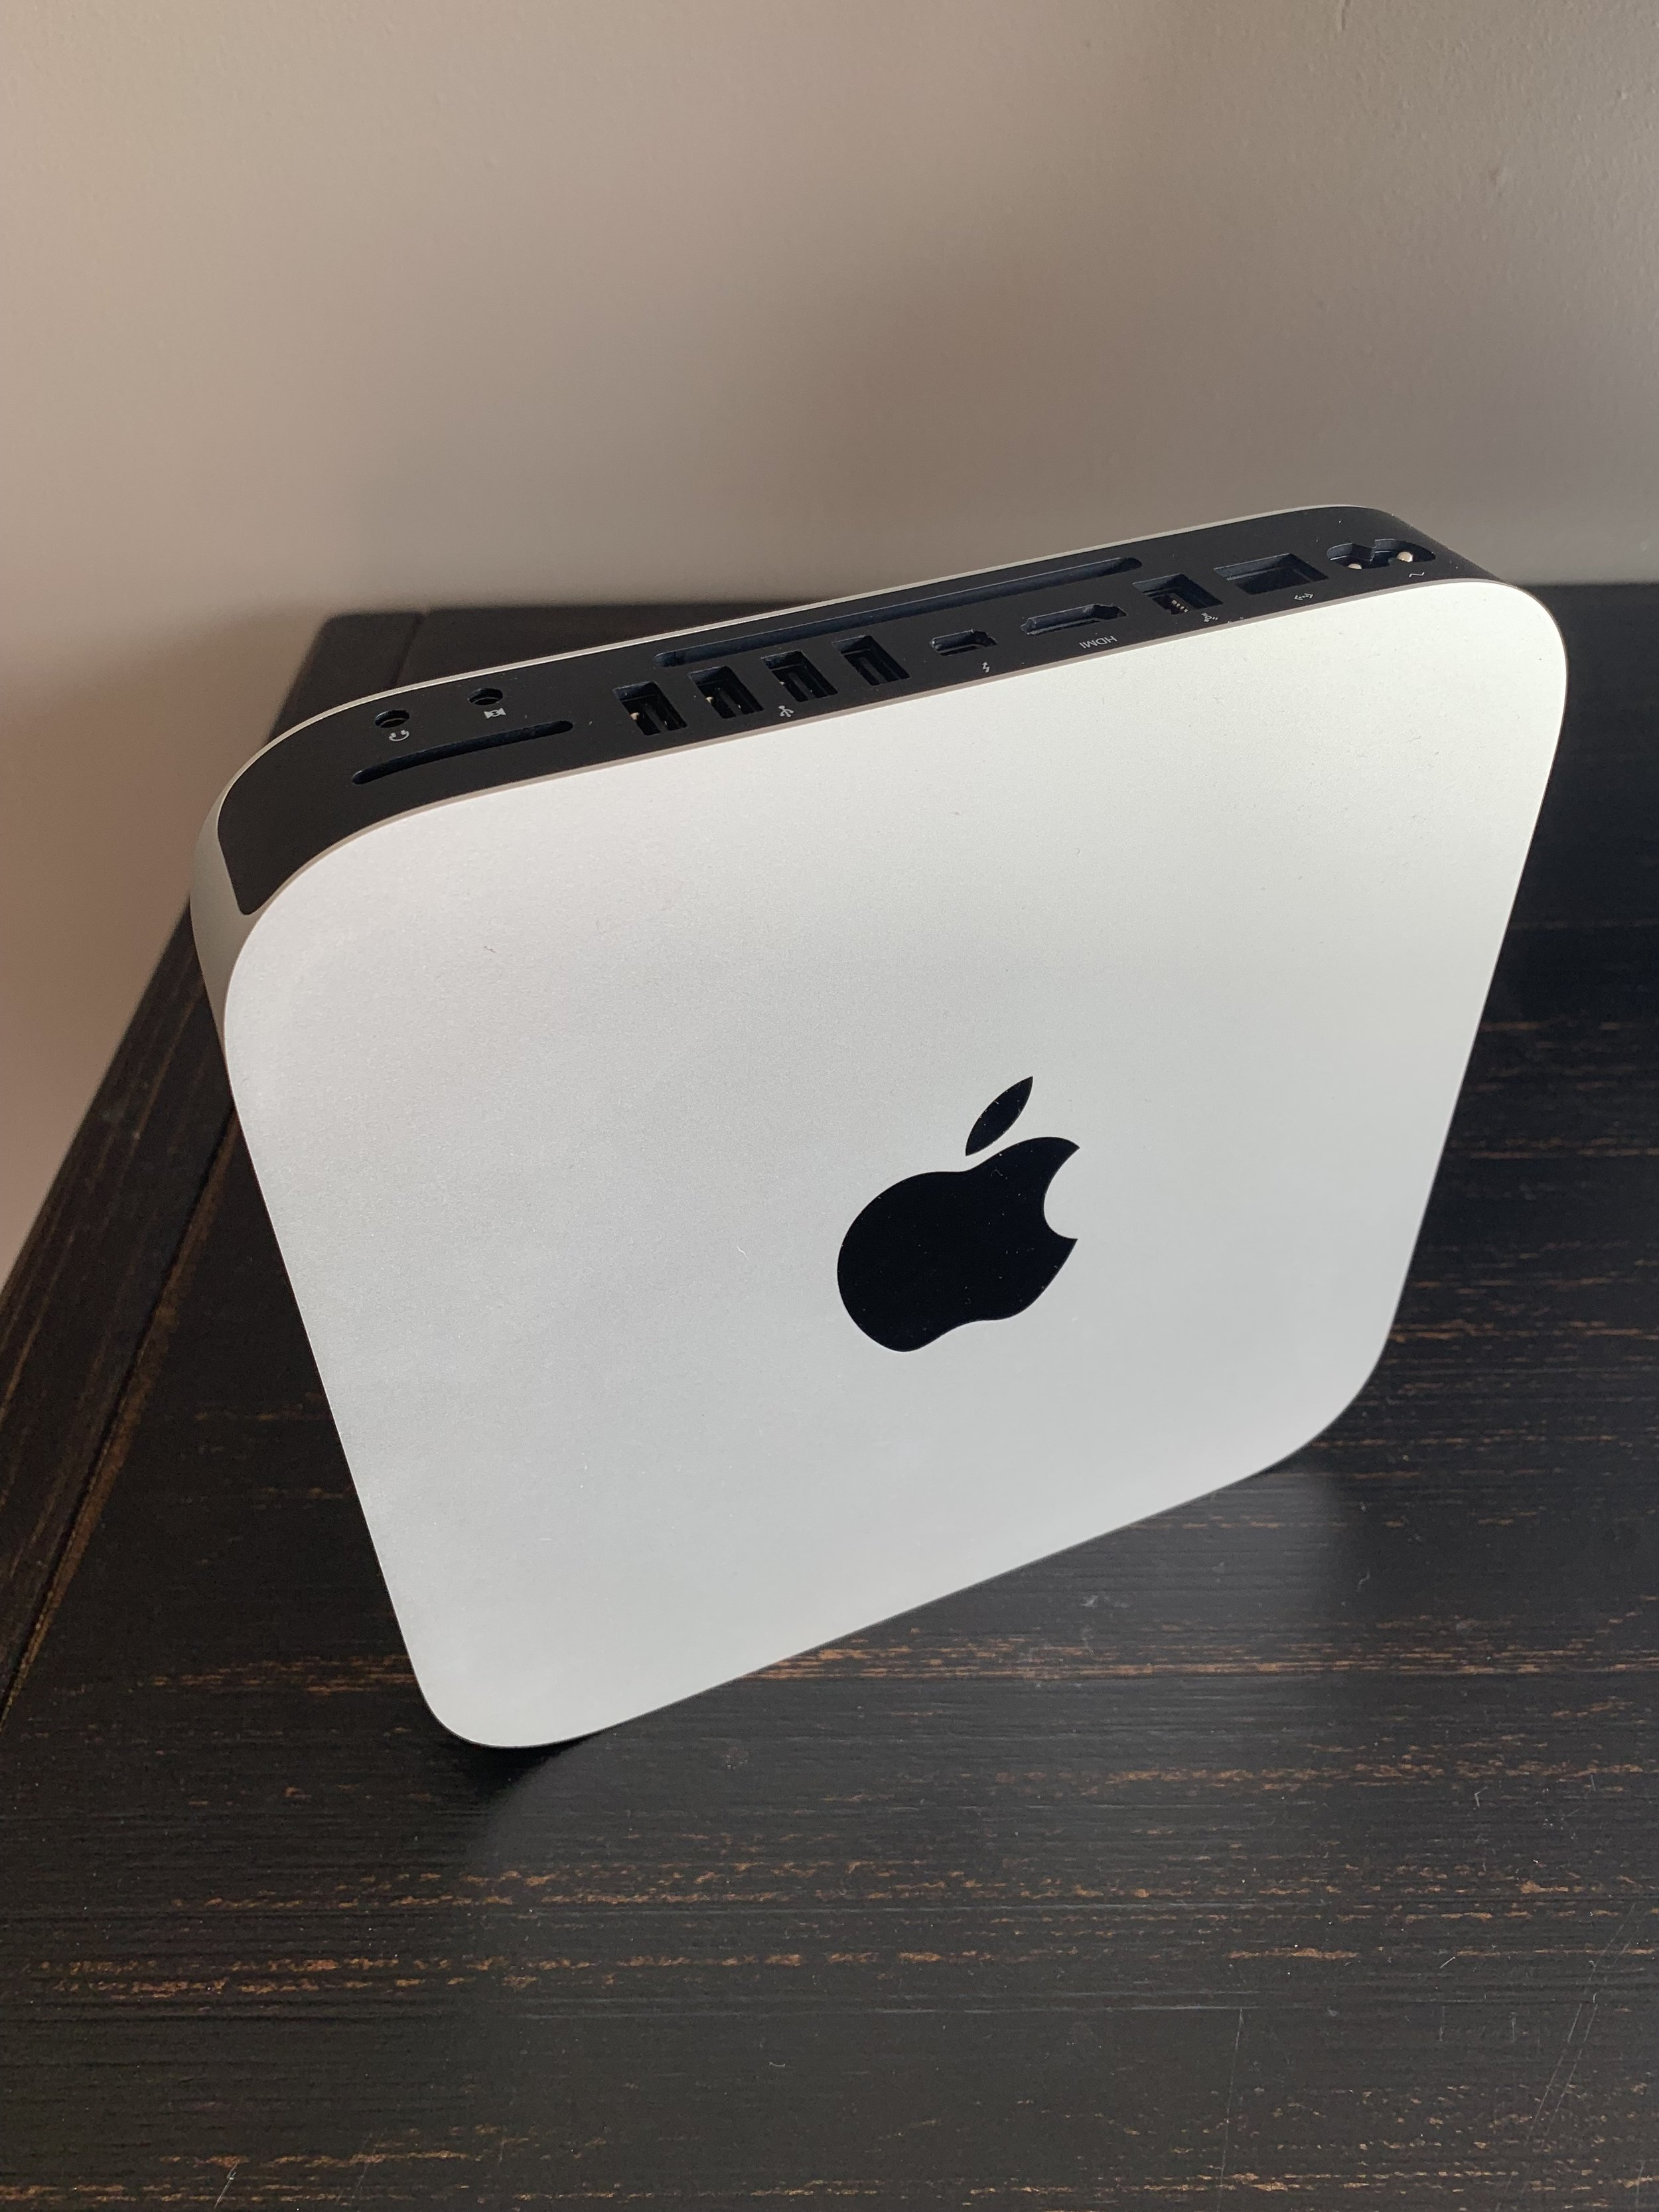 Used Mac mini